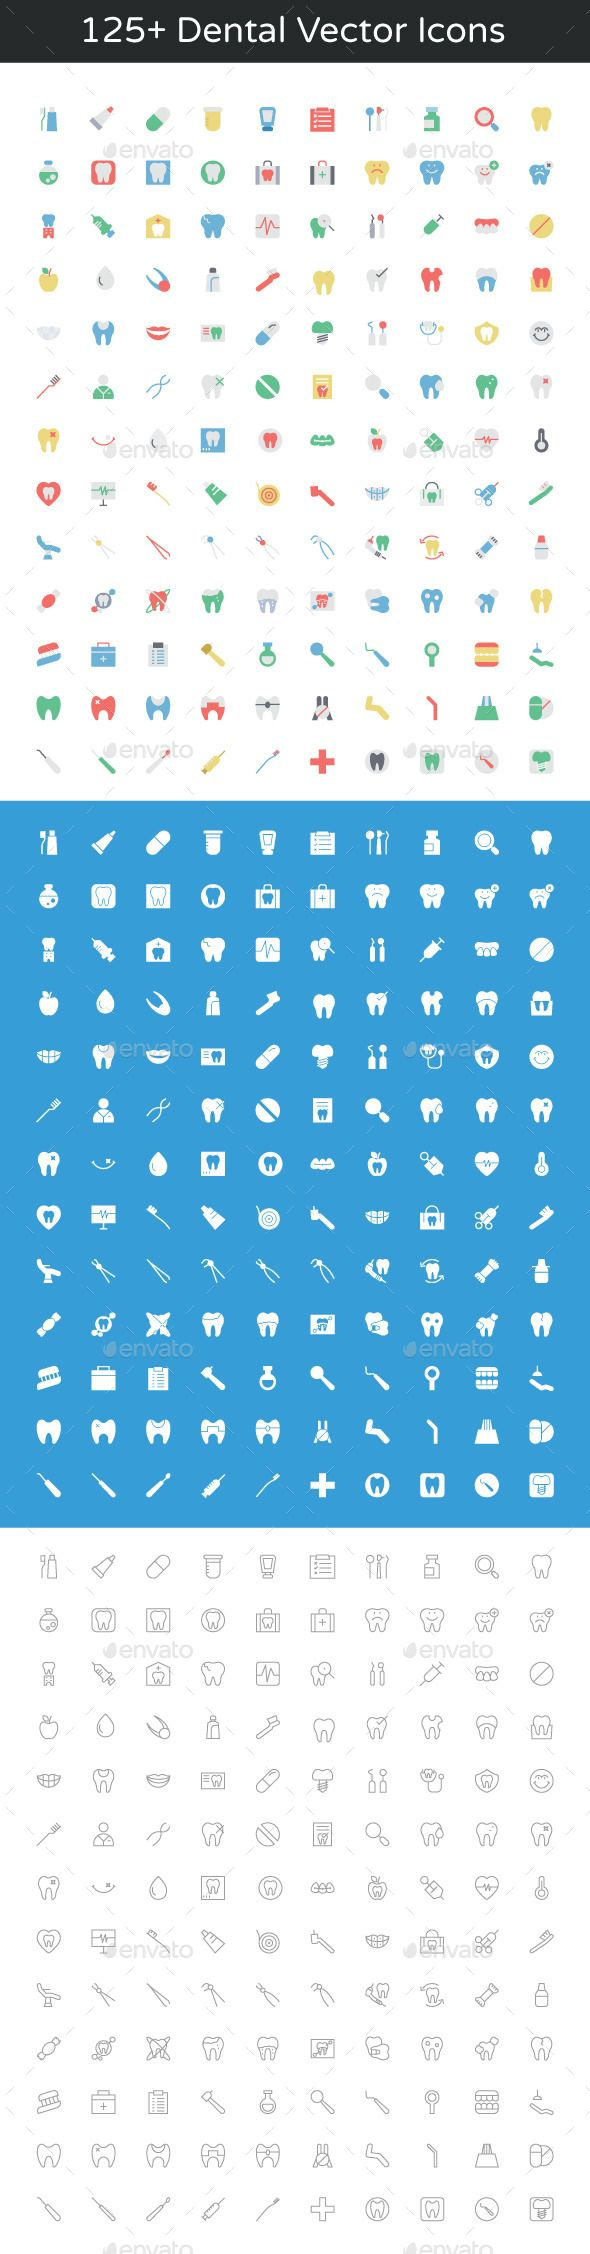 125+ Dental Vector Icons — Photoshop PSD #dental clipart #set of dentist icons • Available here → https://graphicriver.net/item/125-dental-vector-icons/11893831?ref=pxcr